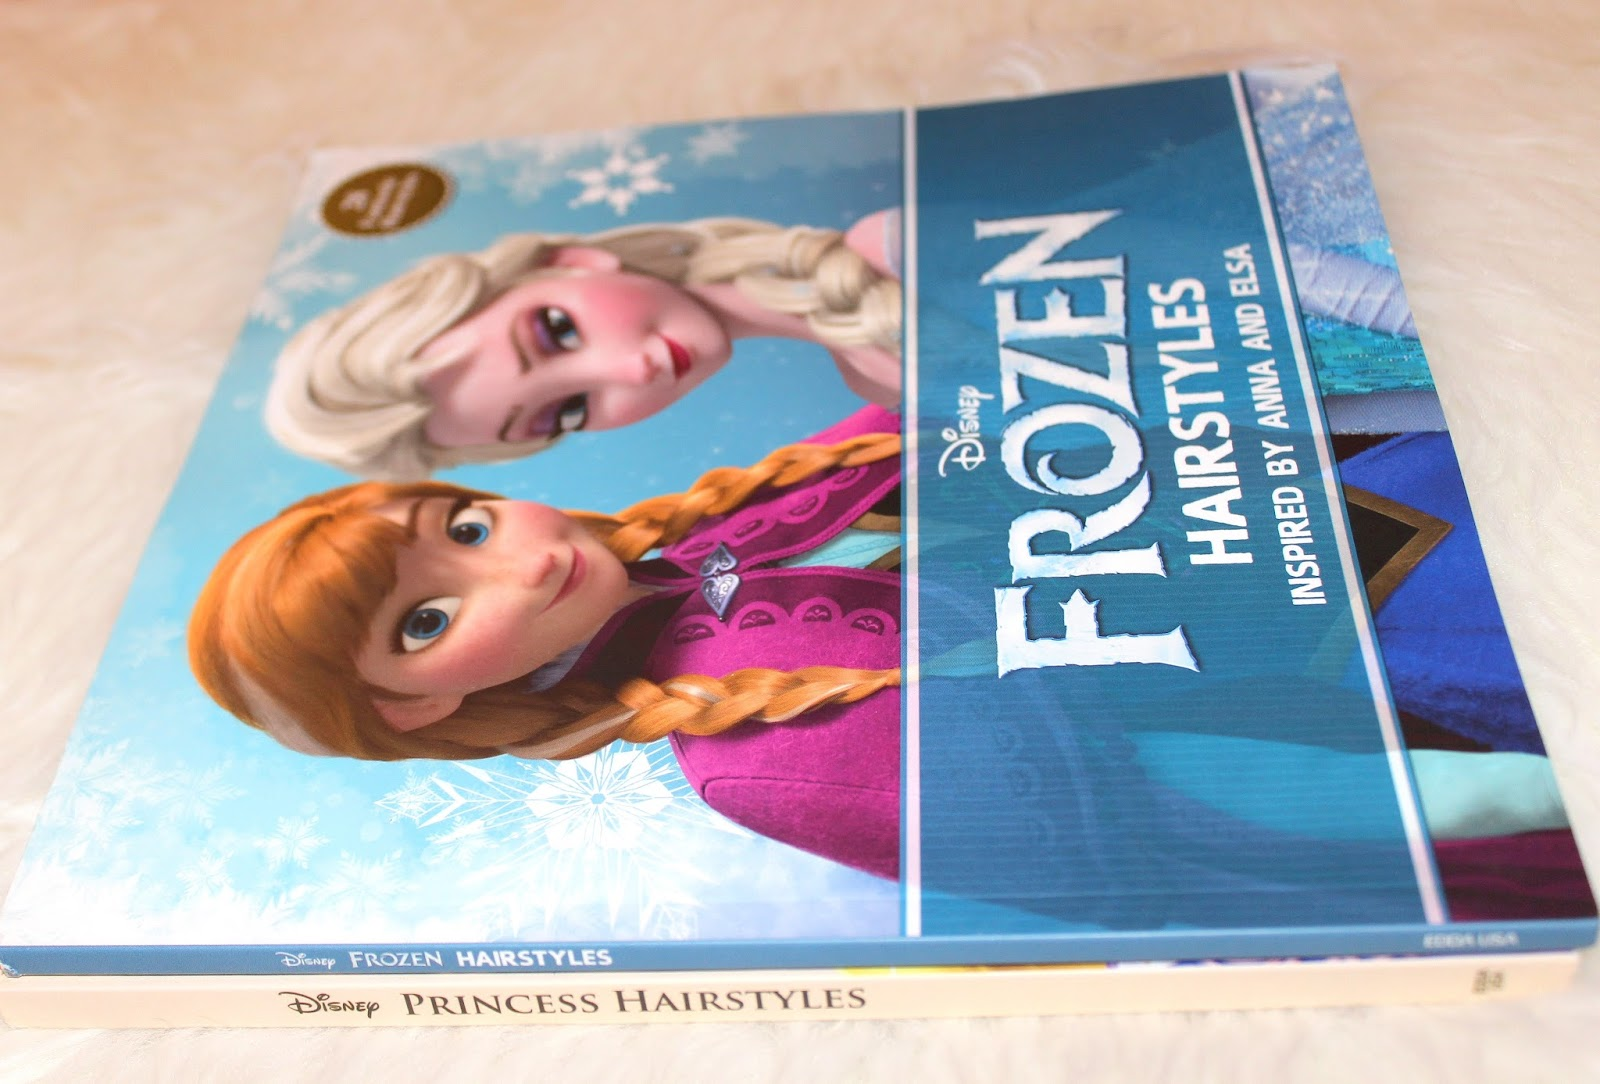 BOOK REVIEW:  FROZEN HAIRSTYLES INSPIRED BY ELSA AND ANNA